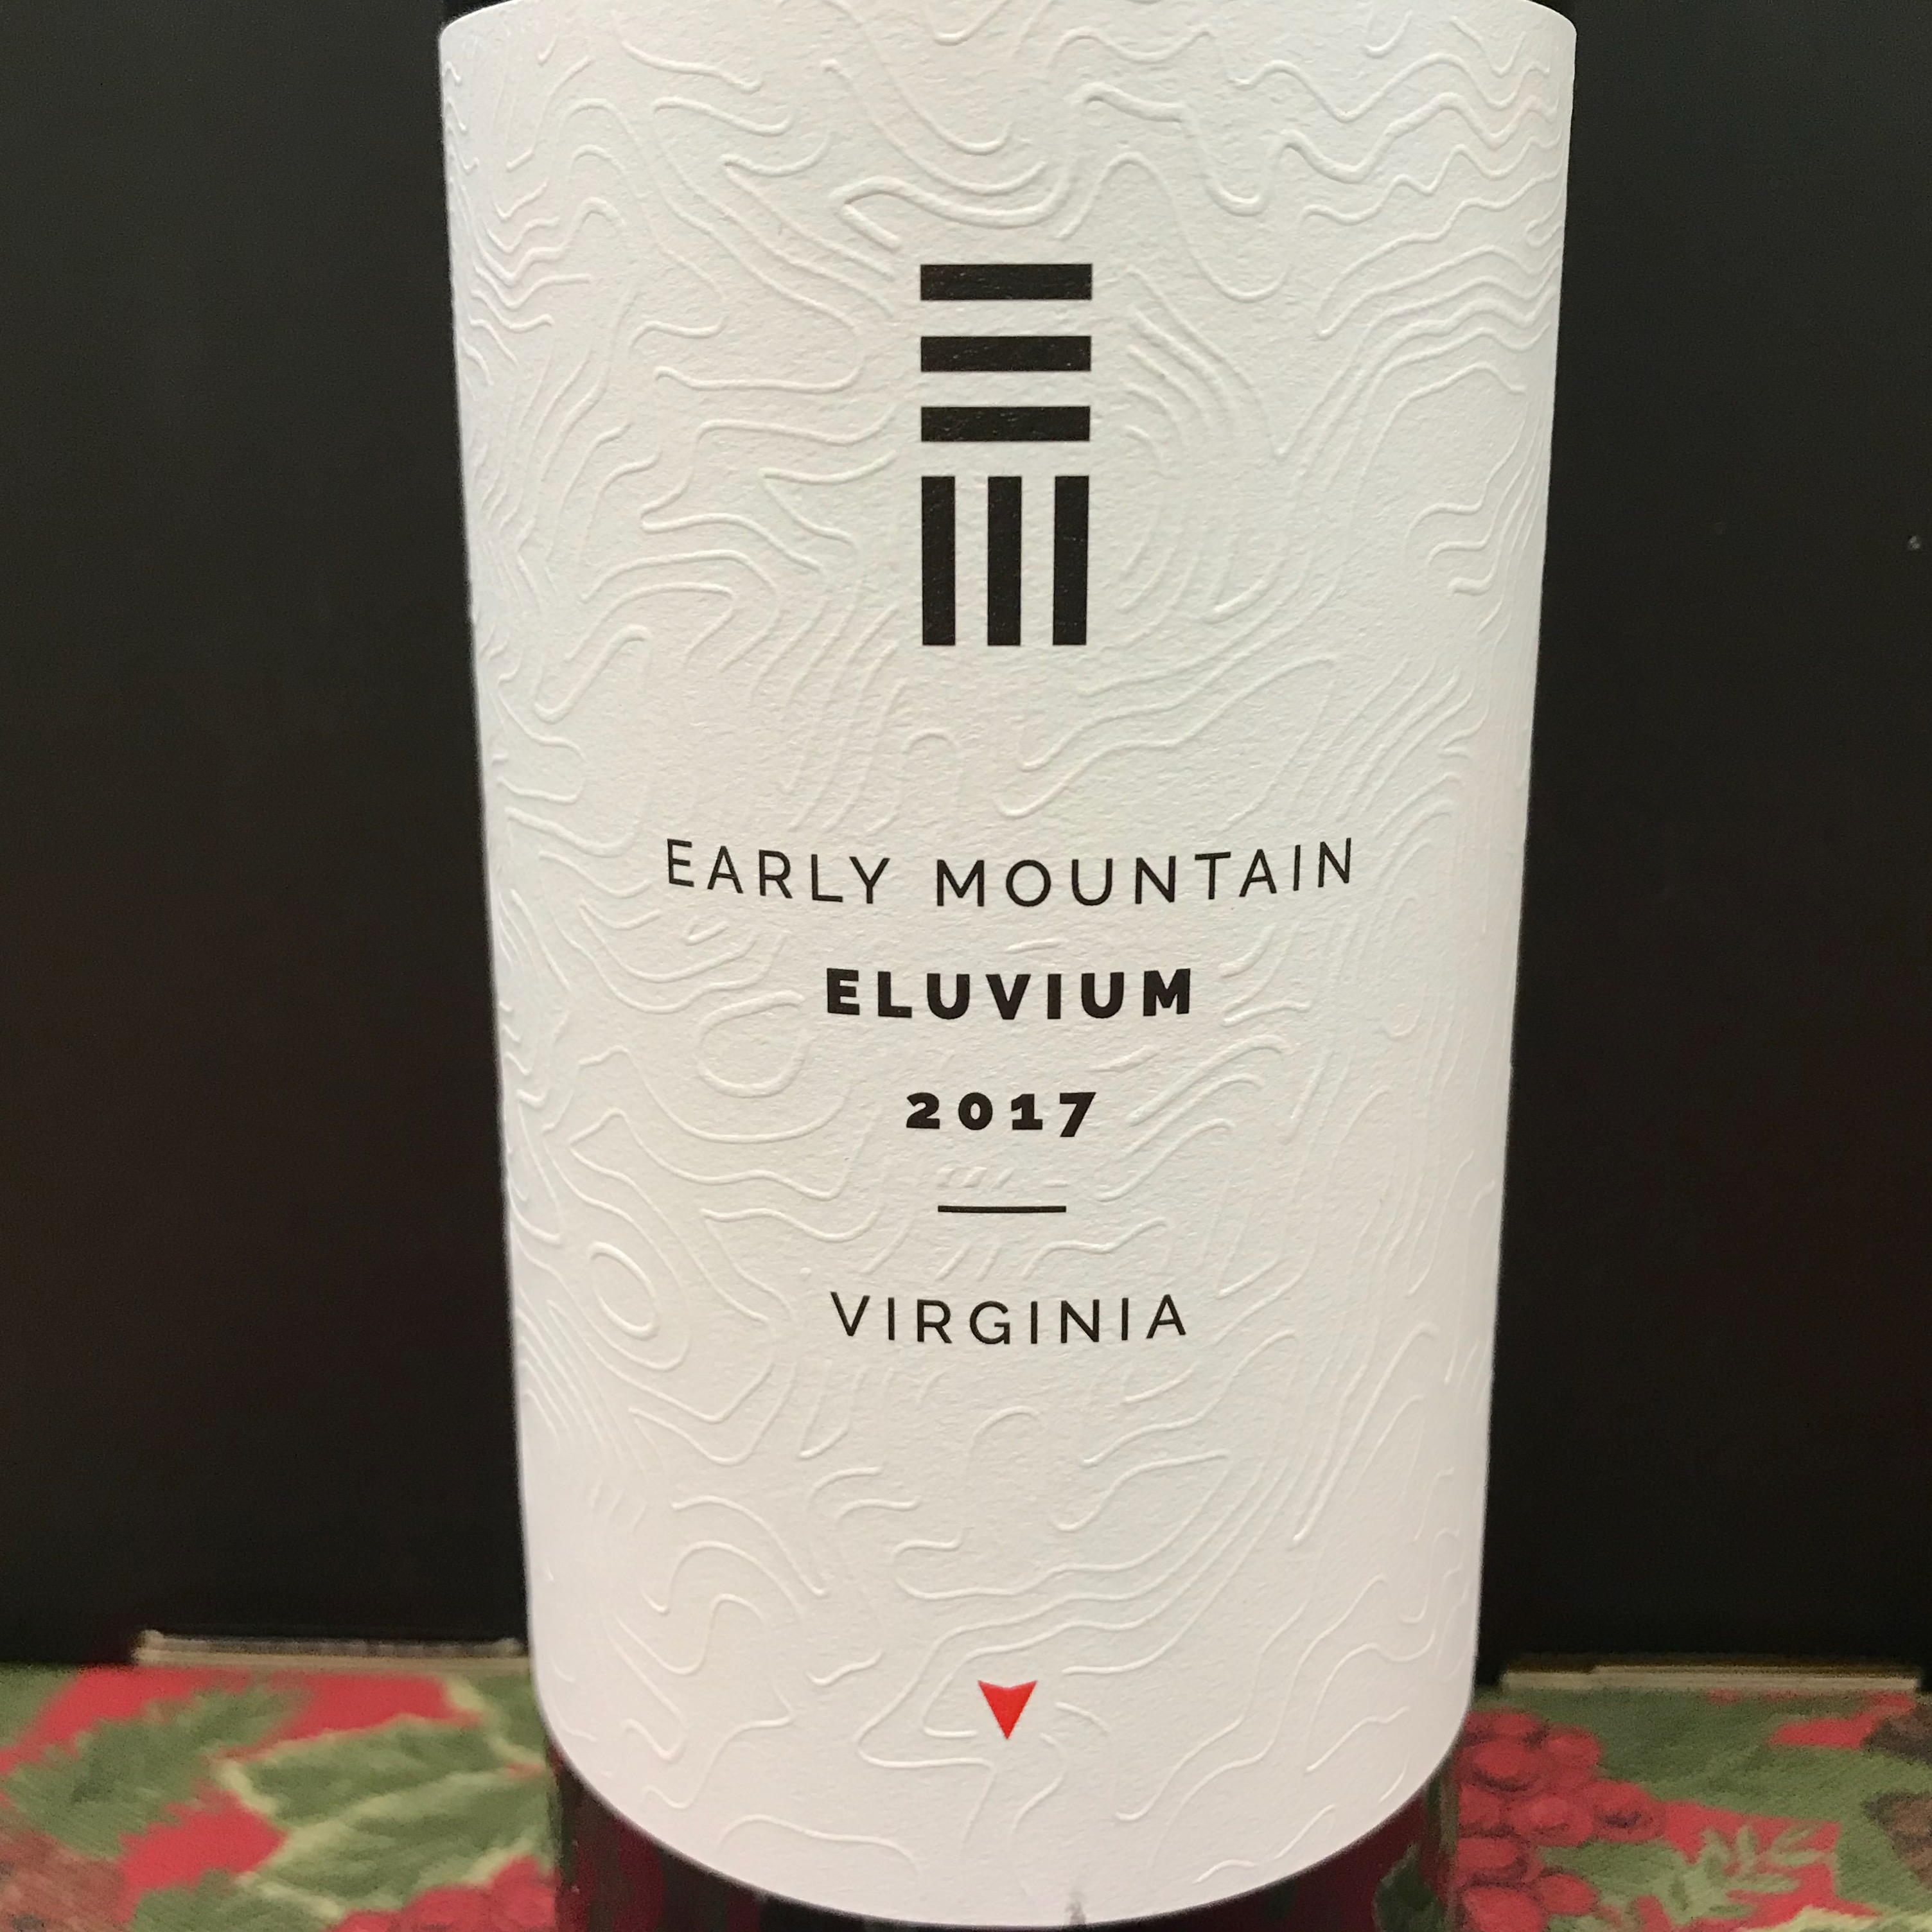 Early Mountain Eluvium 2017